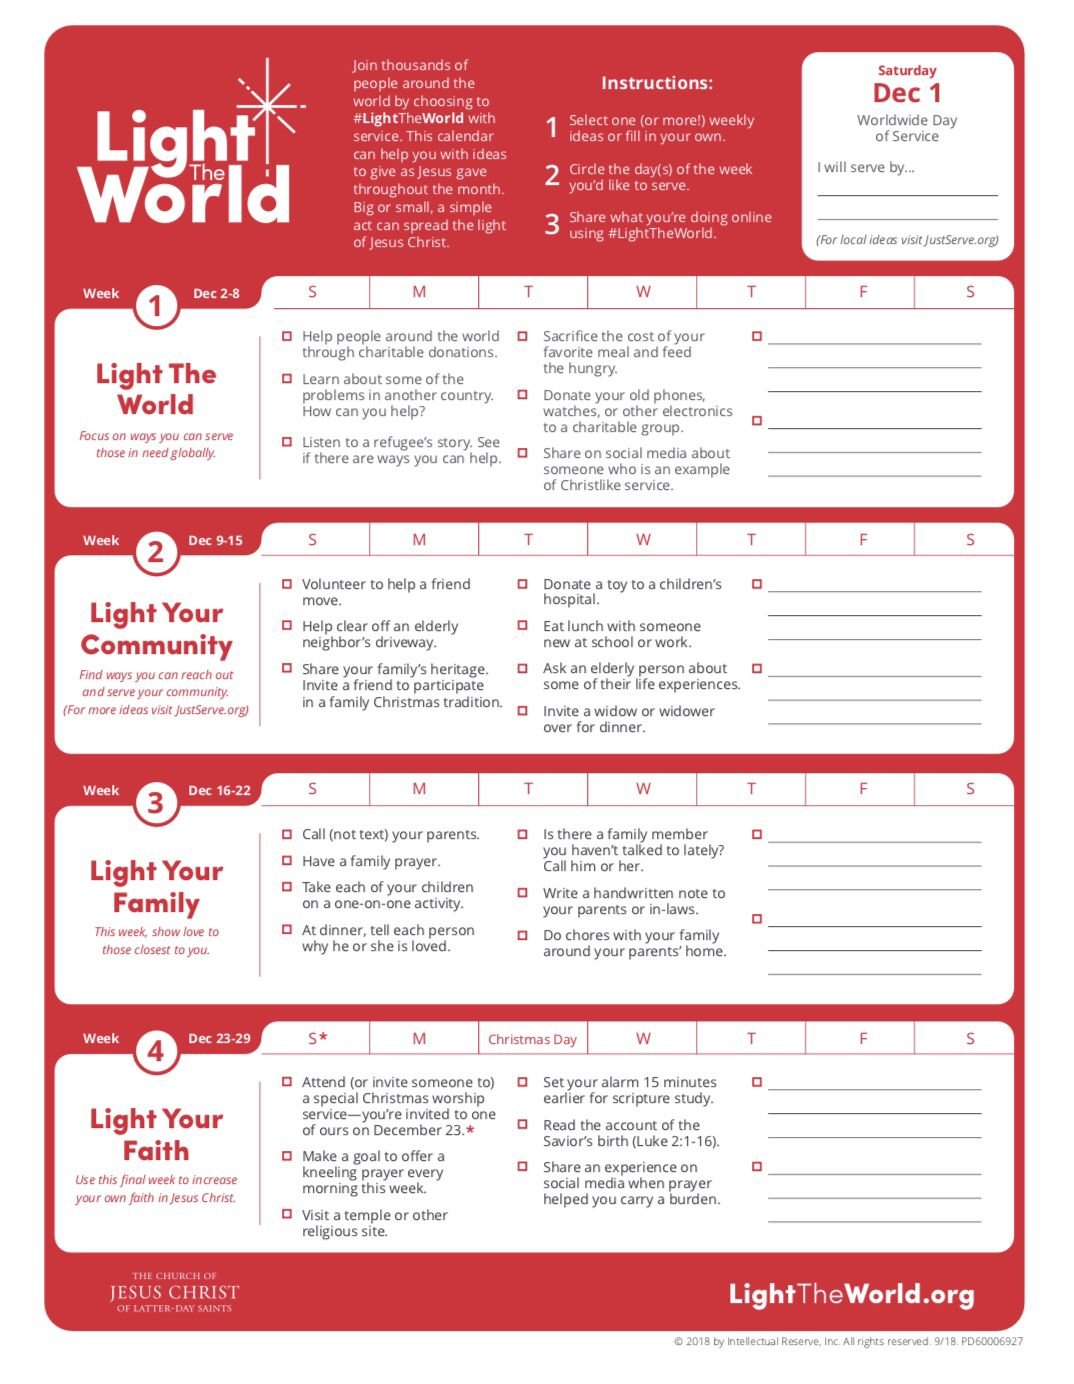 2018 Lds Light The World Calendar. | Lds Light The World Templet One Week Calender